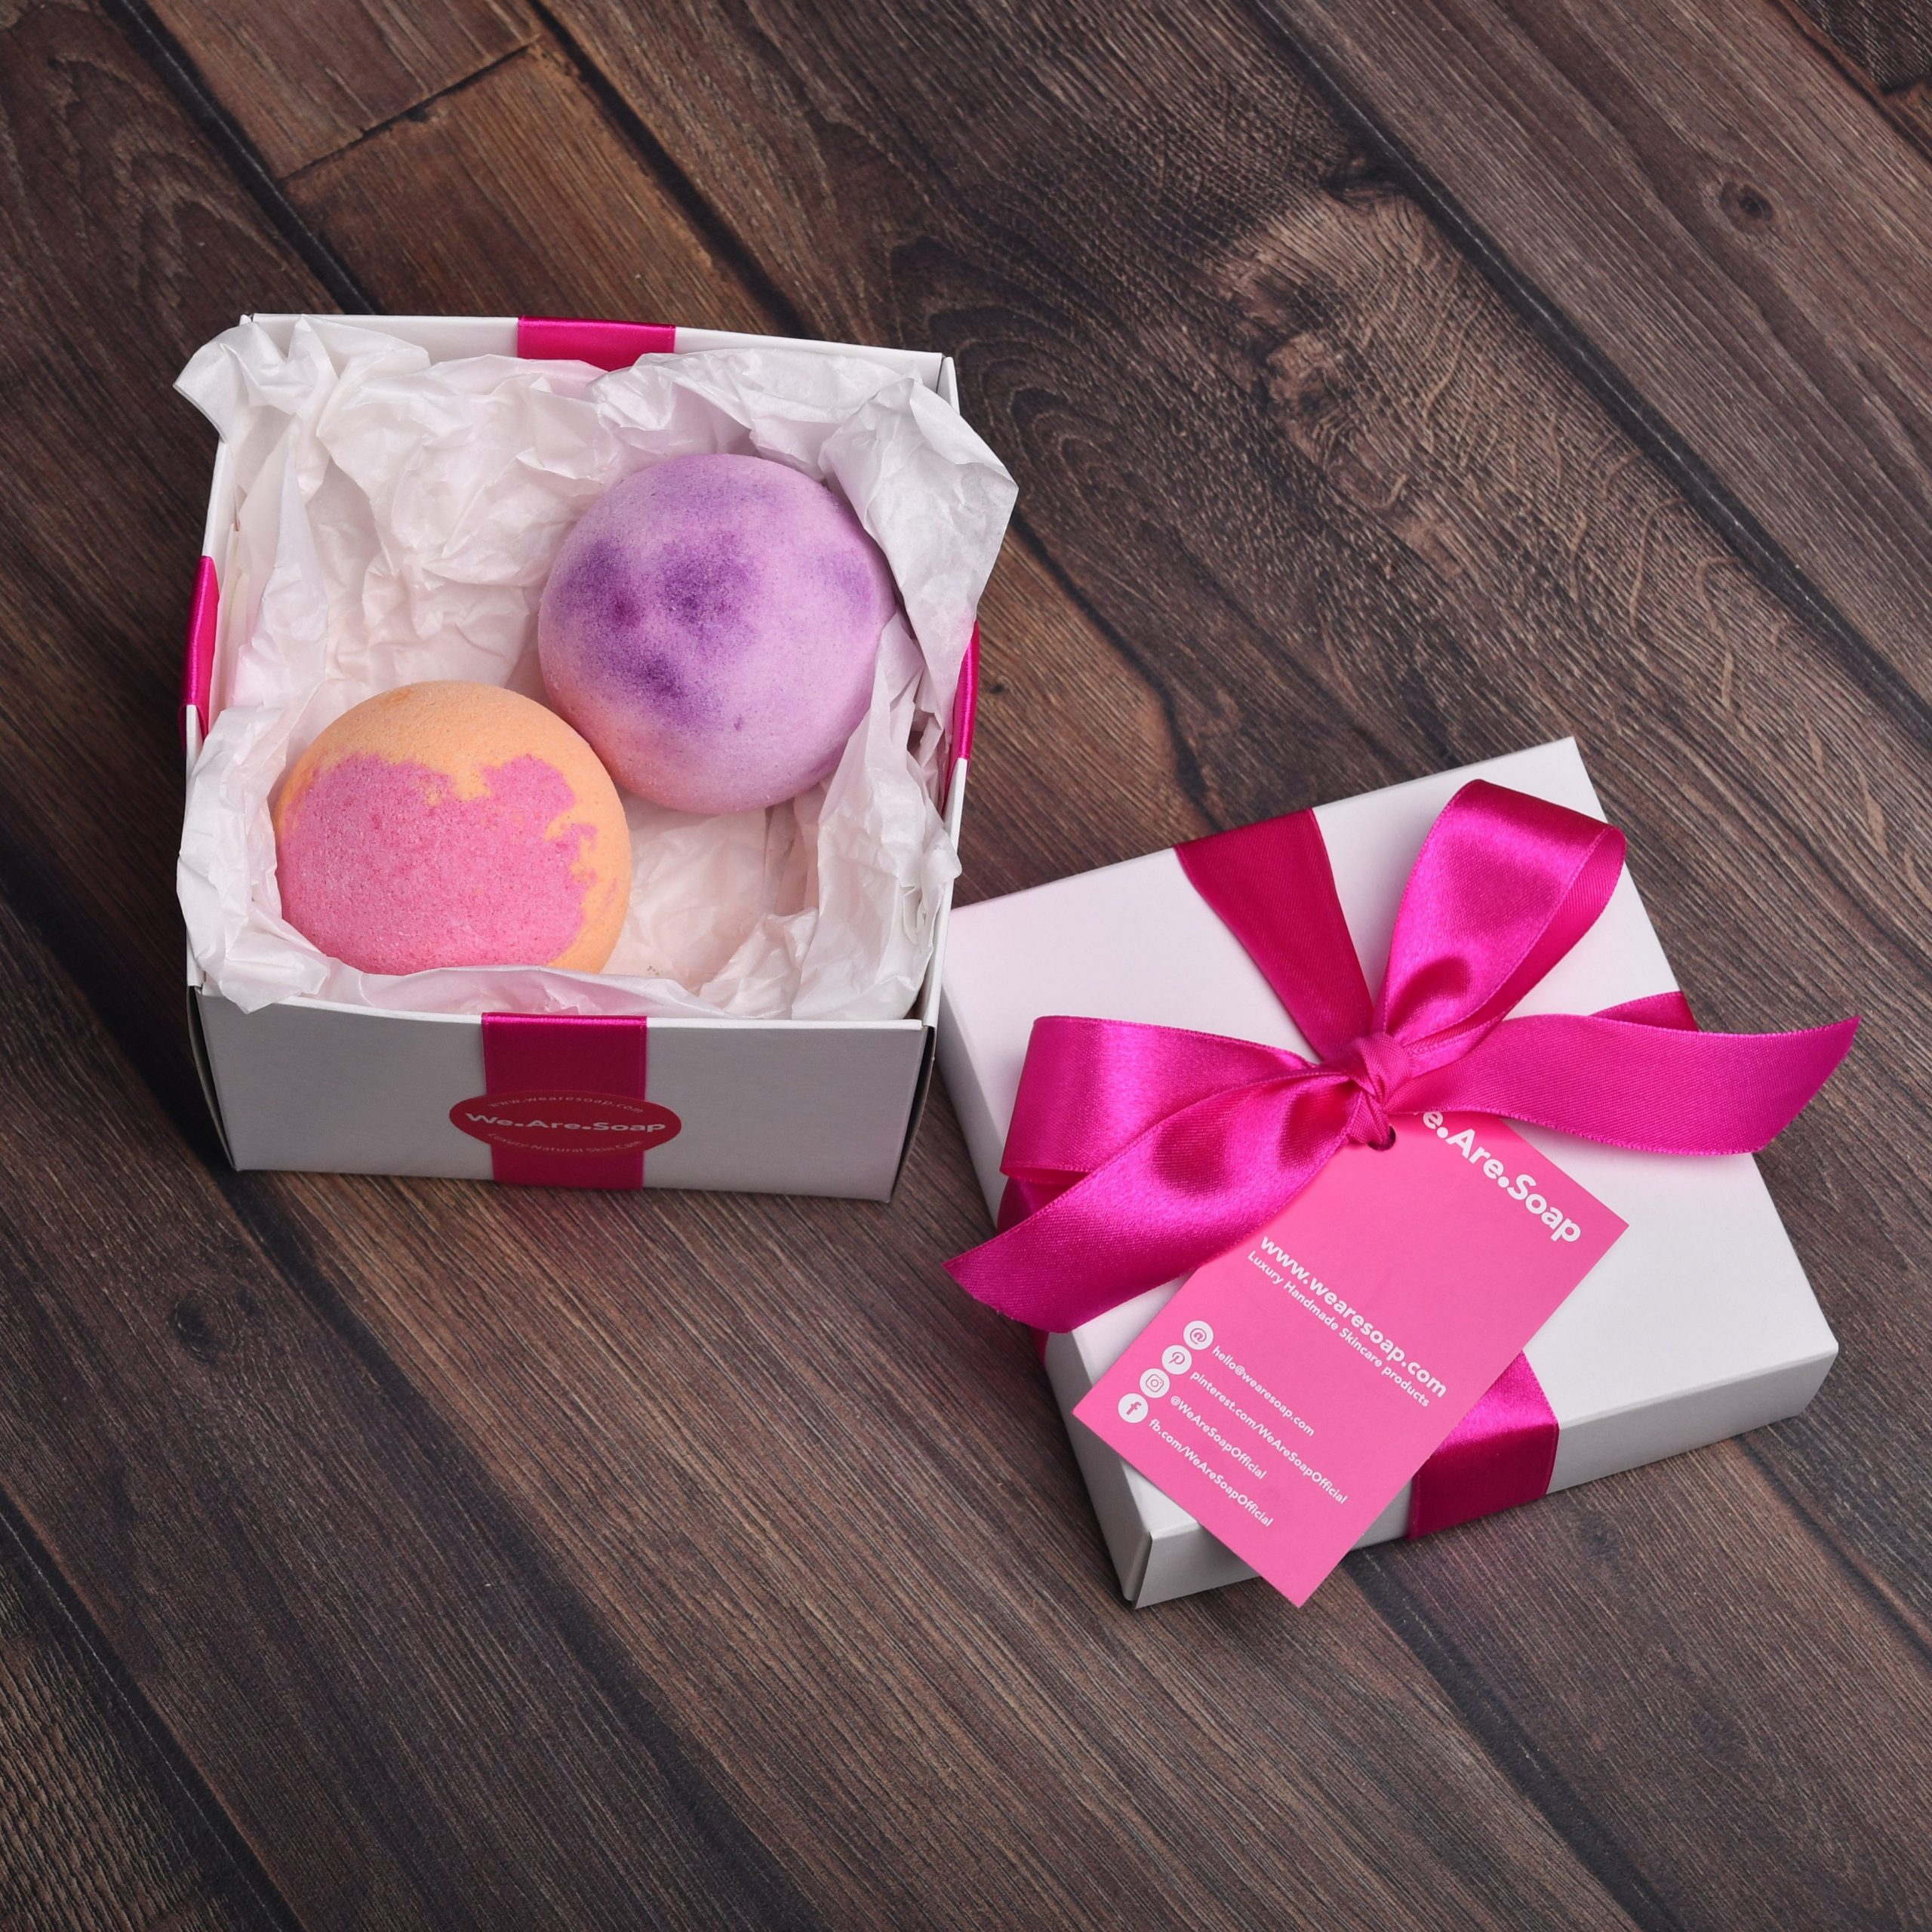 Luxury Bath Bomb Gift Box Luxury Bath Experience Handmade Handmade Moisturizing Vegan